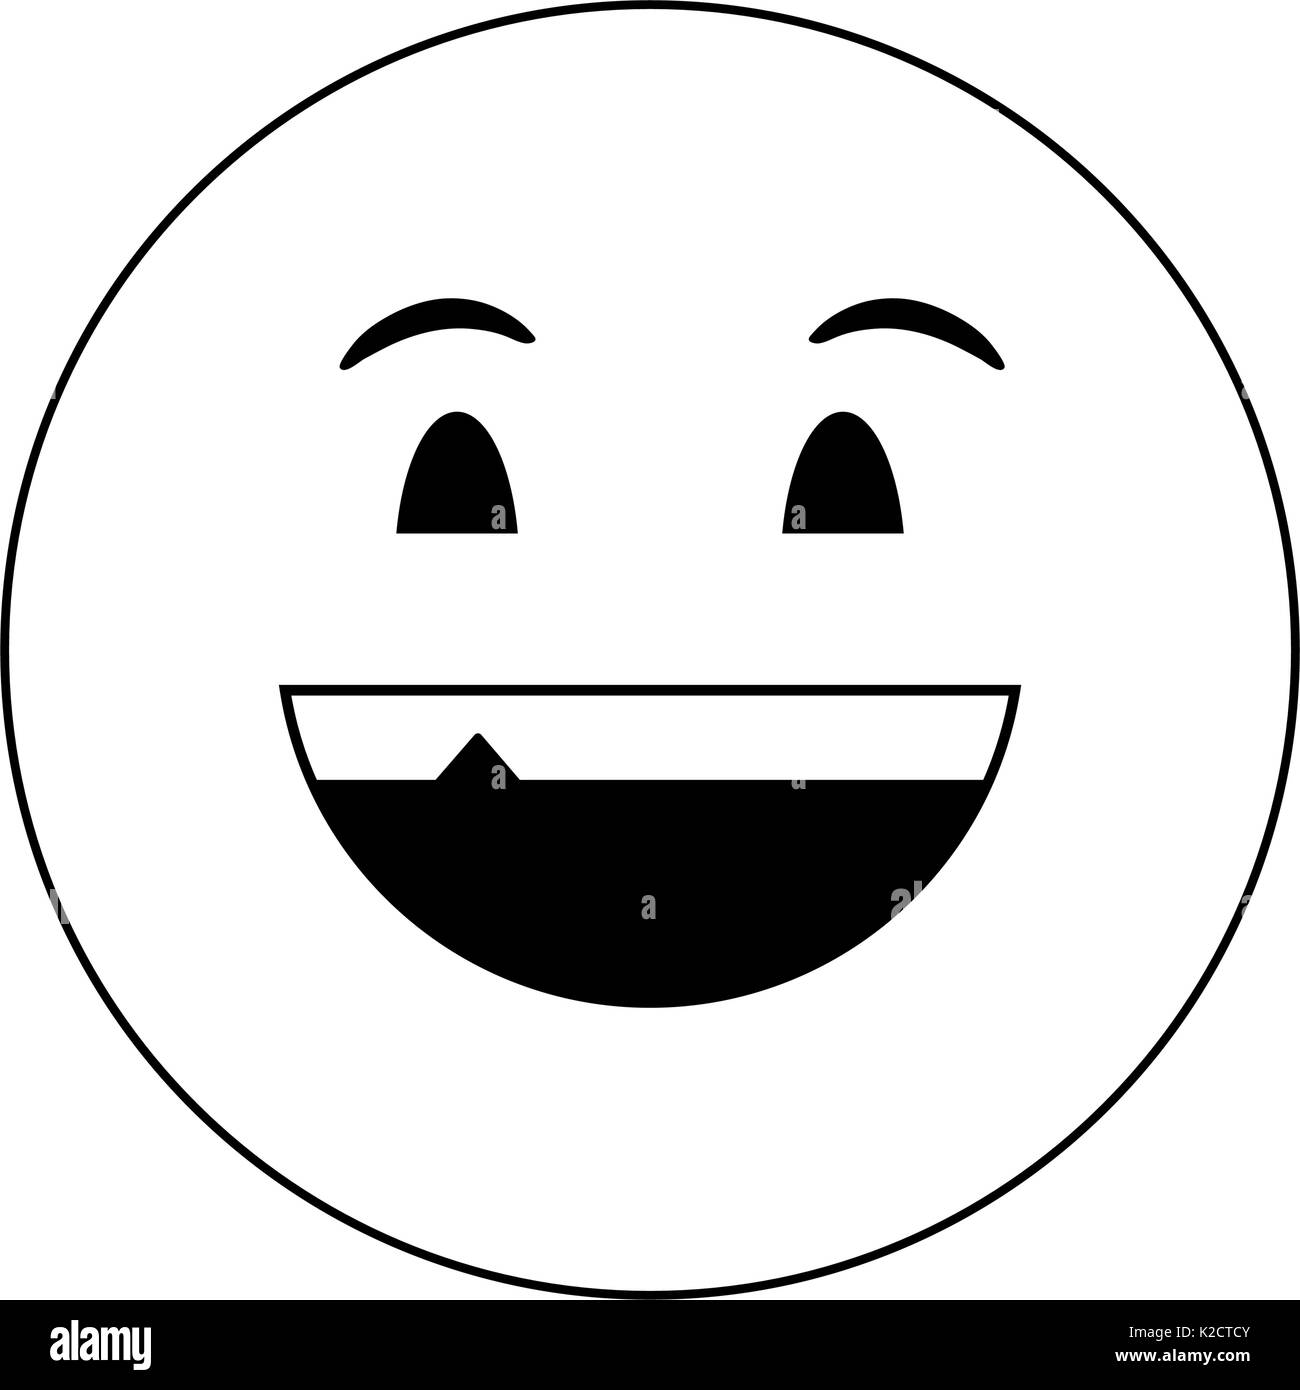 happy grin emoji instant messaging  icon image  - Stock Image